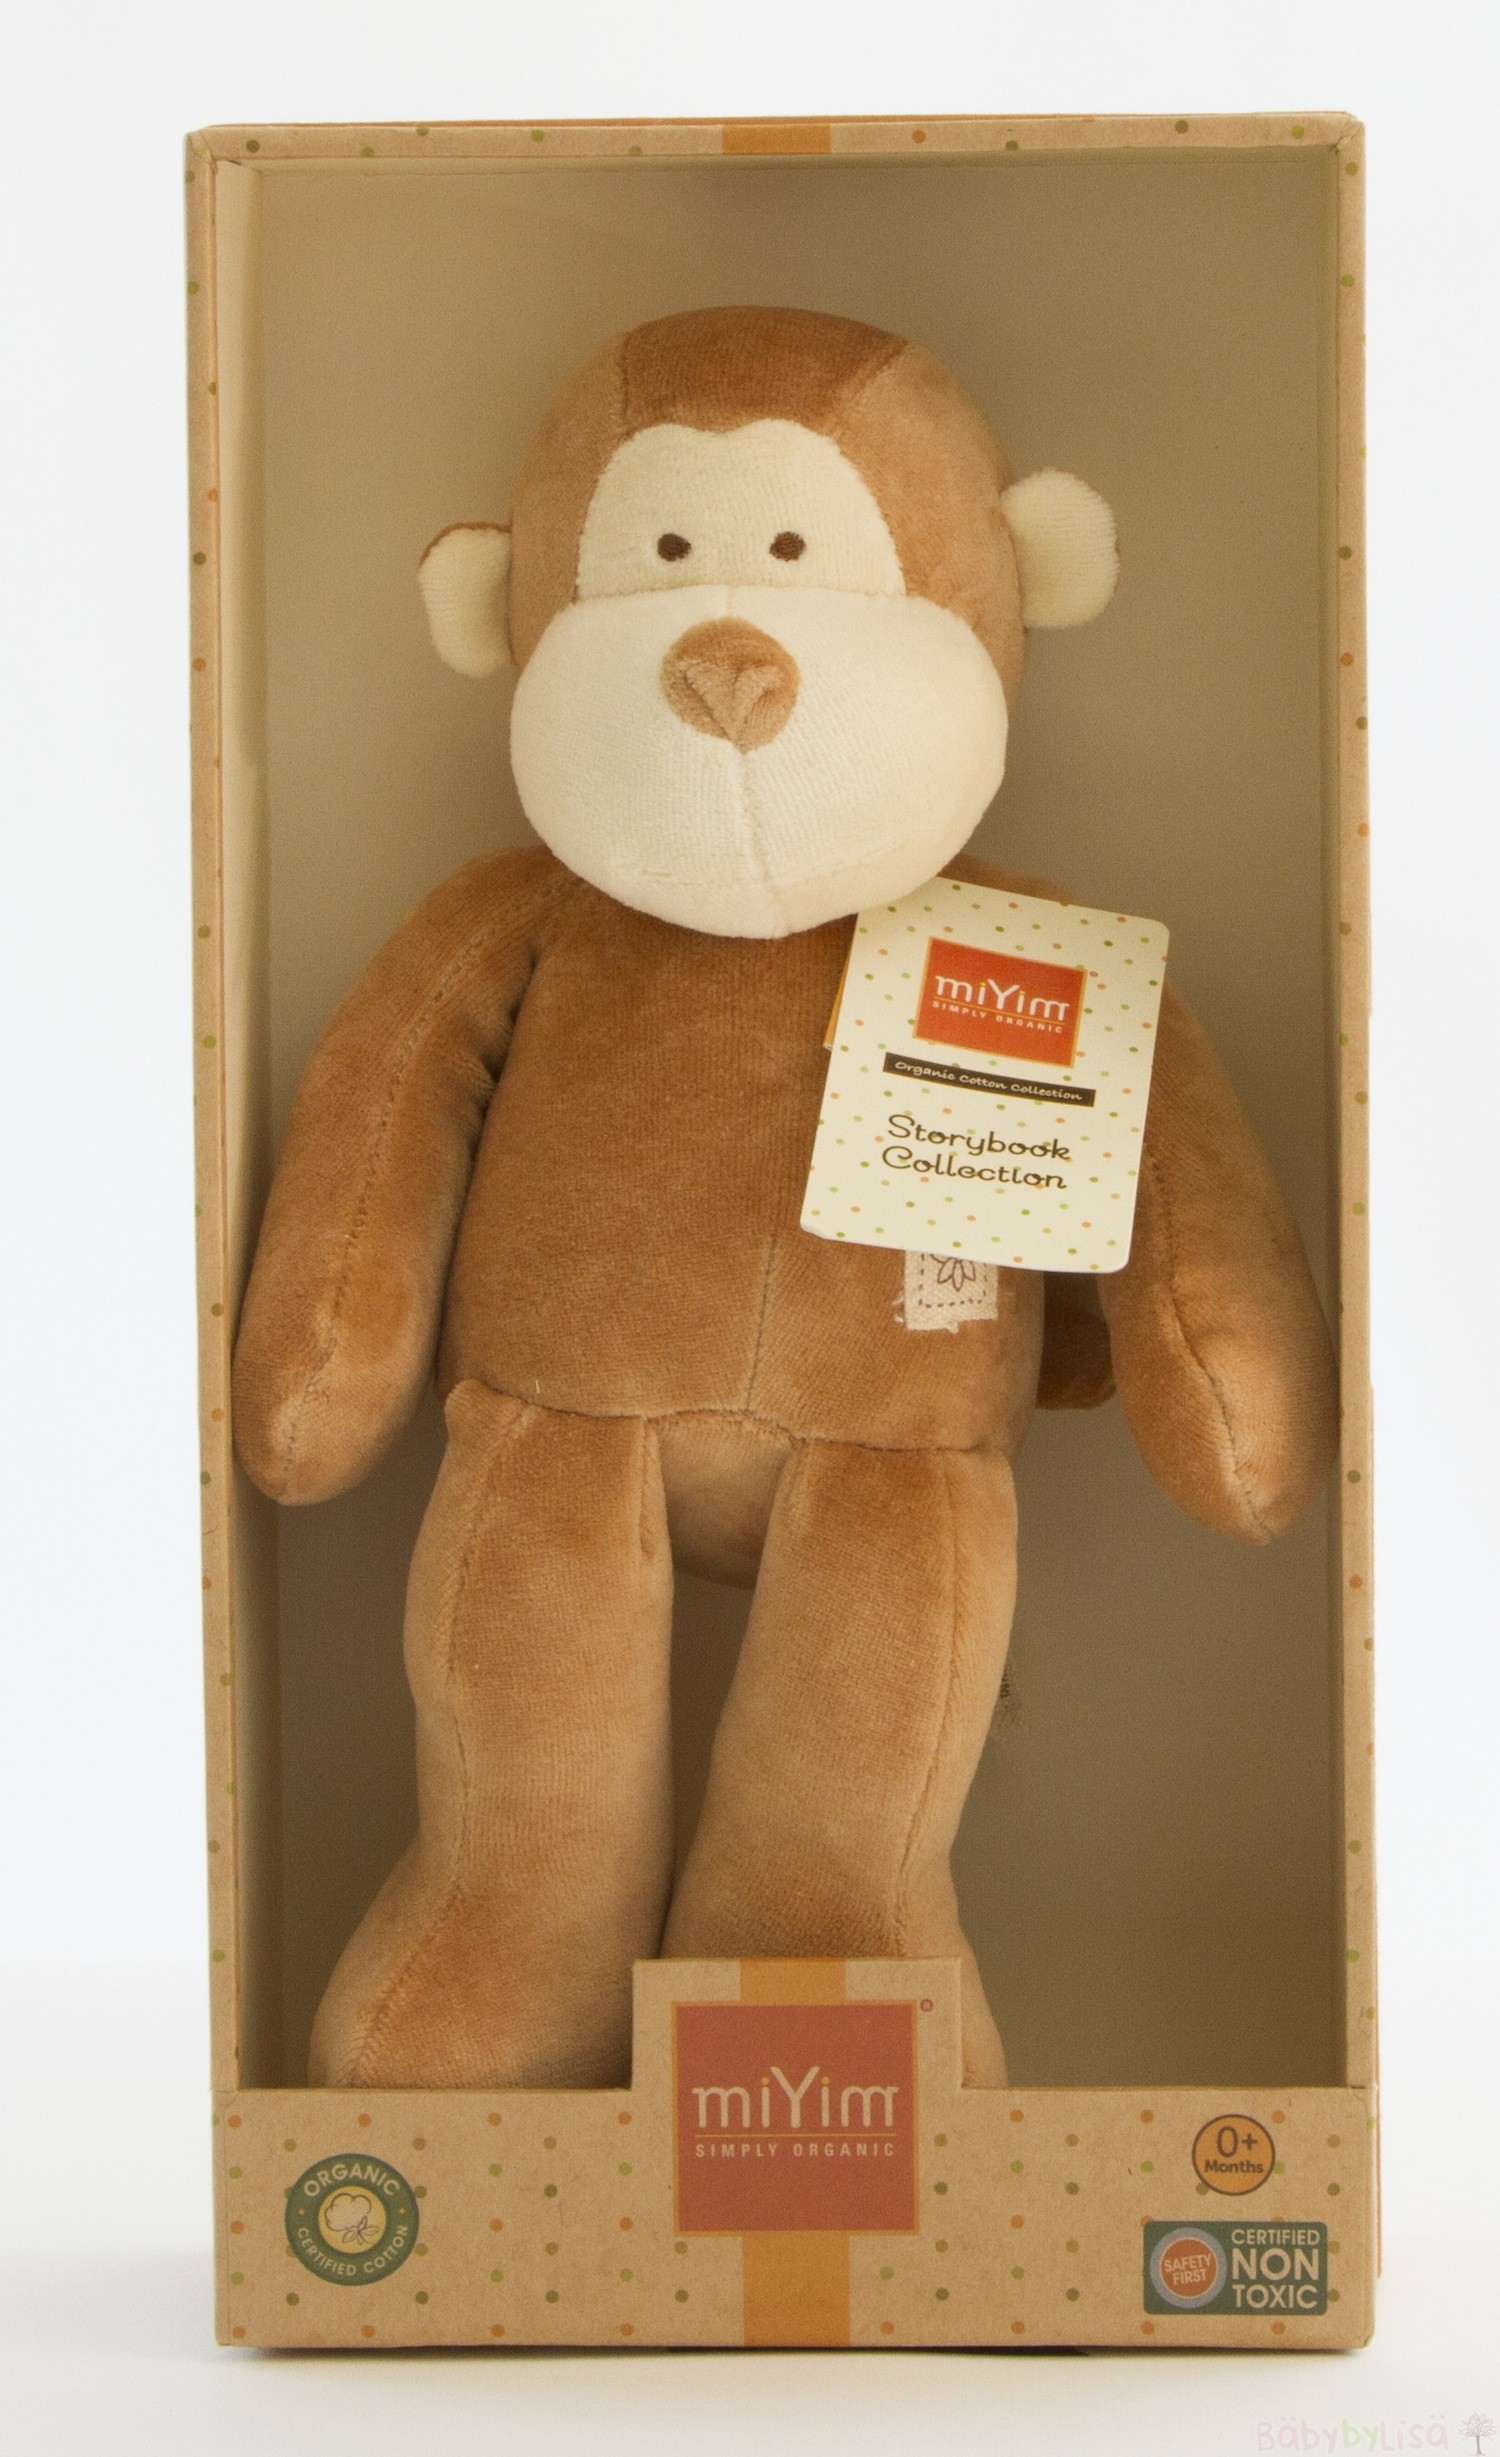 miYim Storybook Plush Toy - Monkey